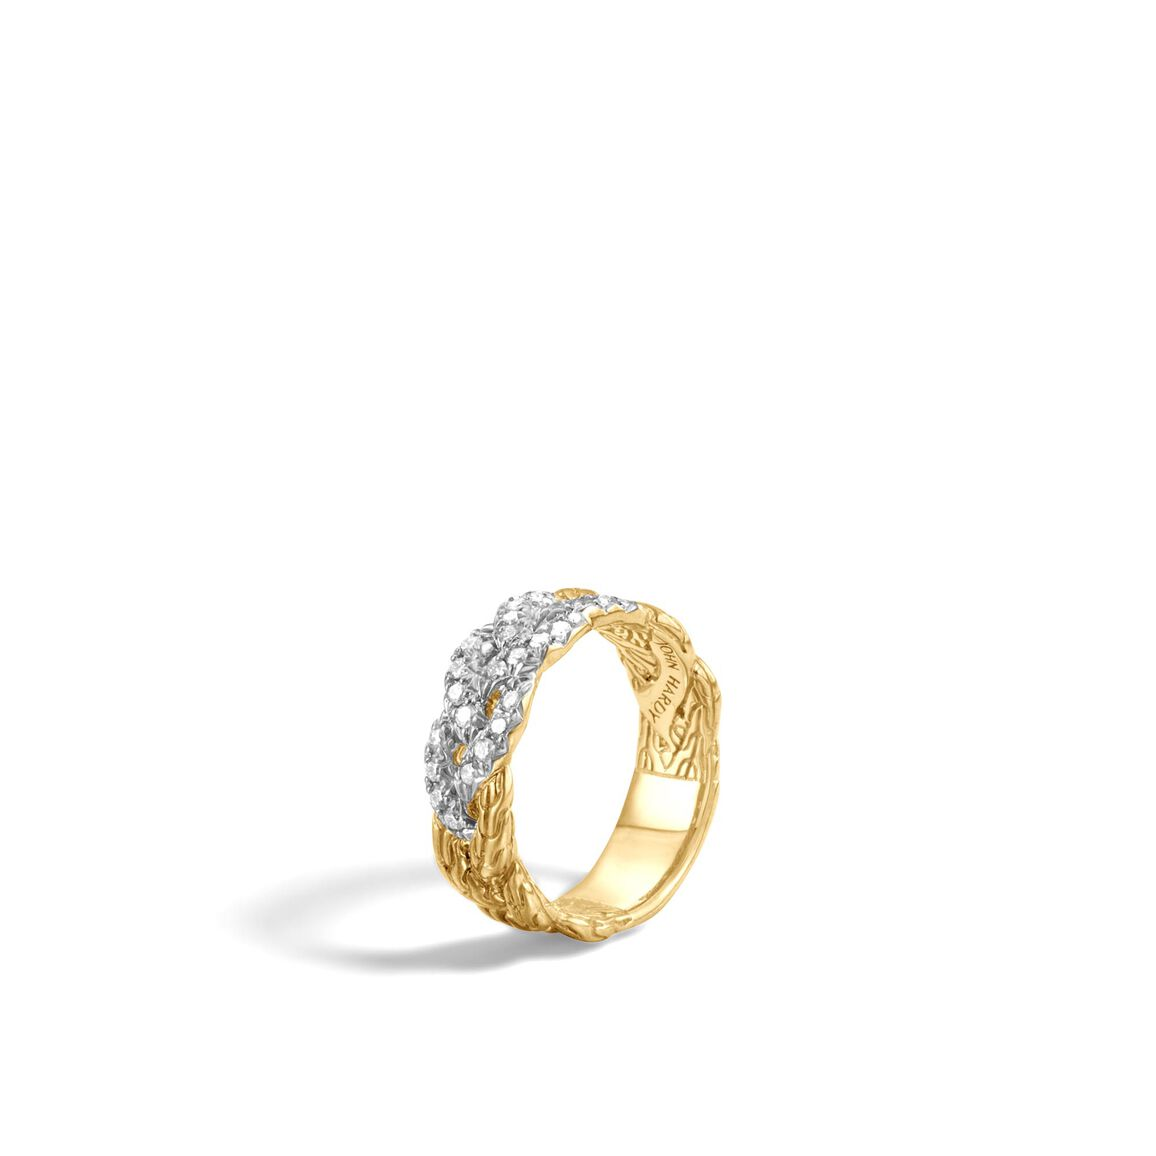 Braided Chain 7MM Band Ring in 18K Gold with Diamonds